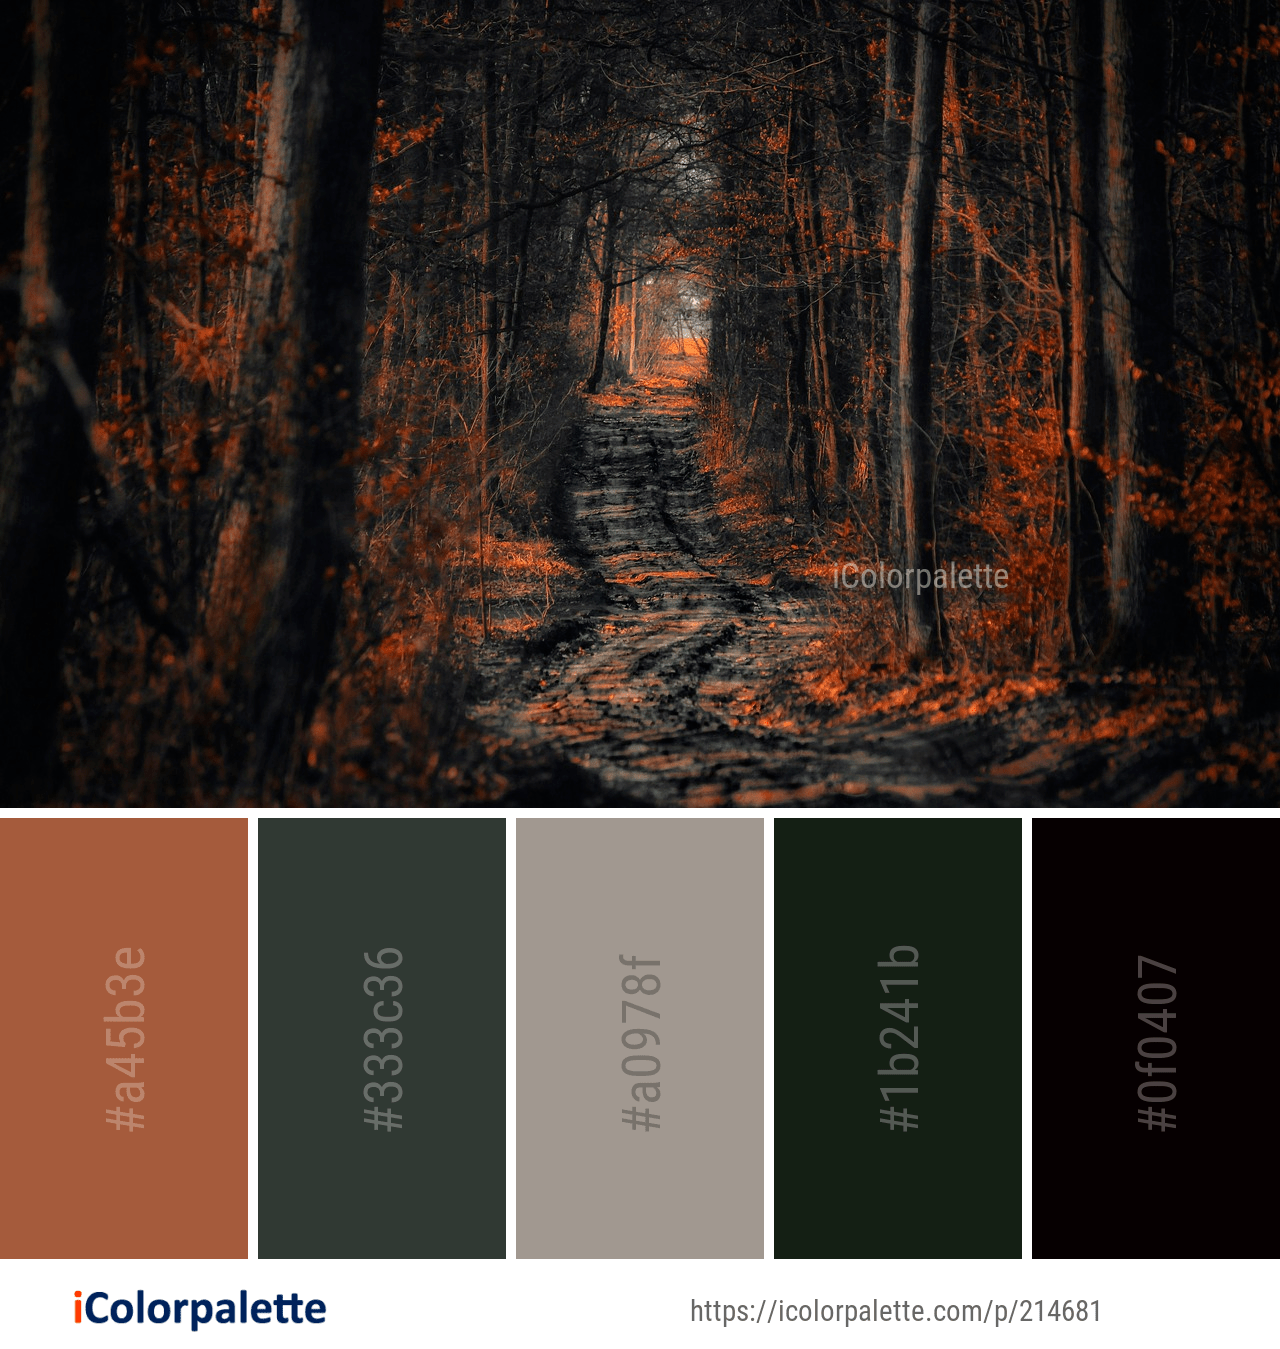 Color Palette Ideas Icolorpalette Colors Inspiration Graphics Design Inspiration Beautiful Colorp Dark Color Palette Color Palette Summer Color Palette